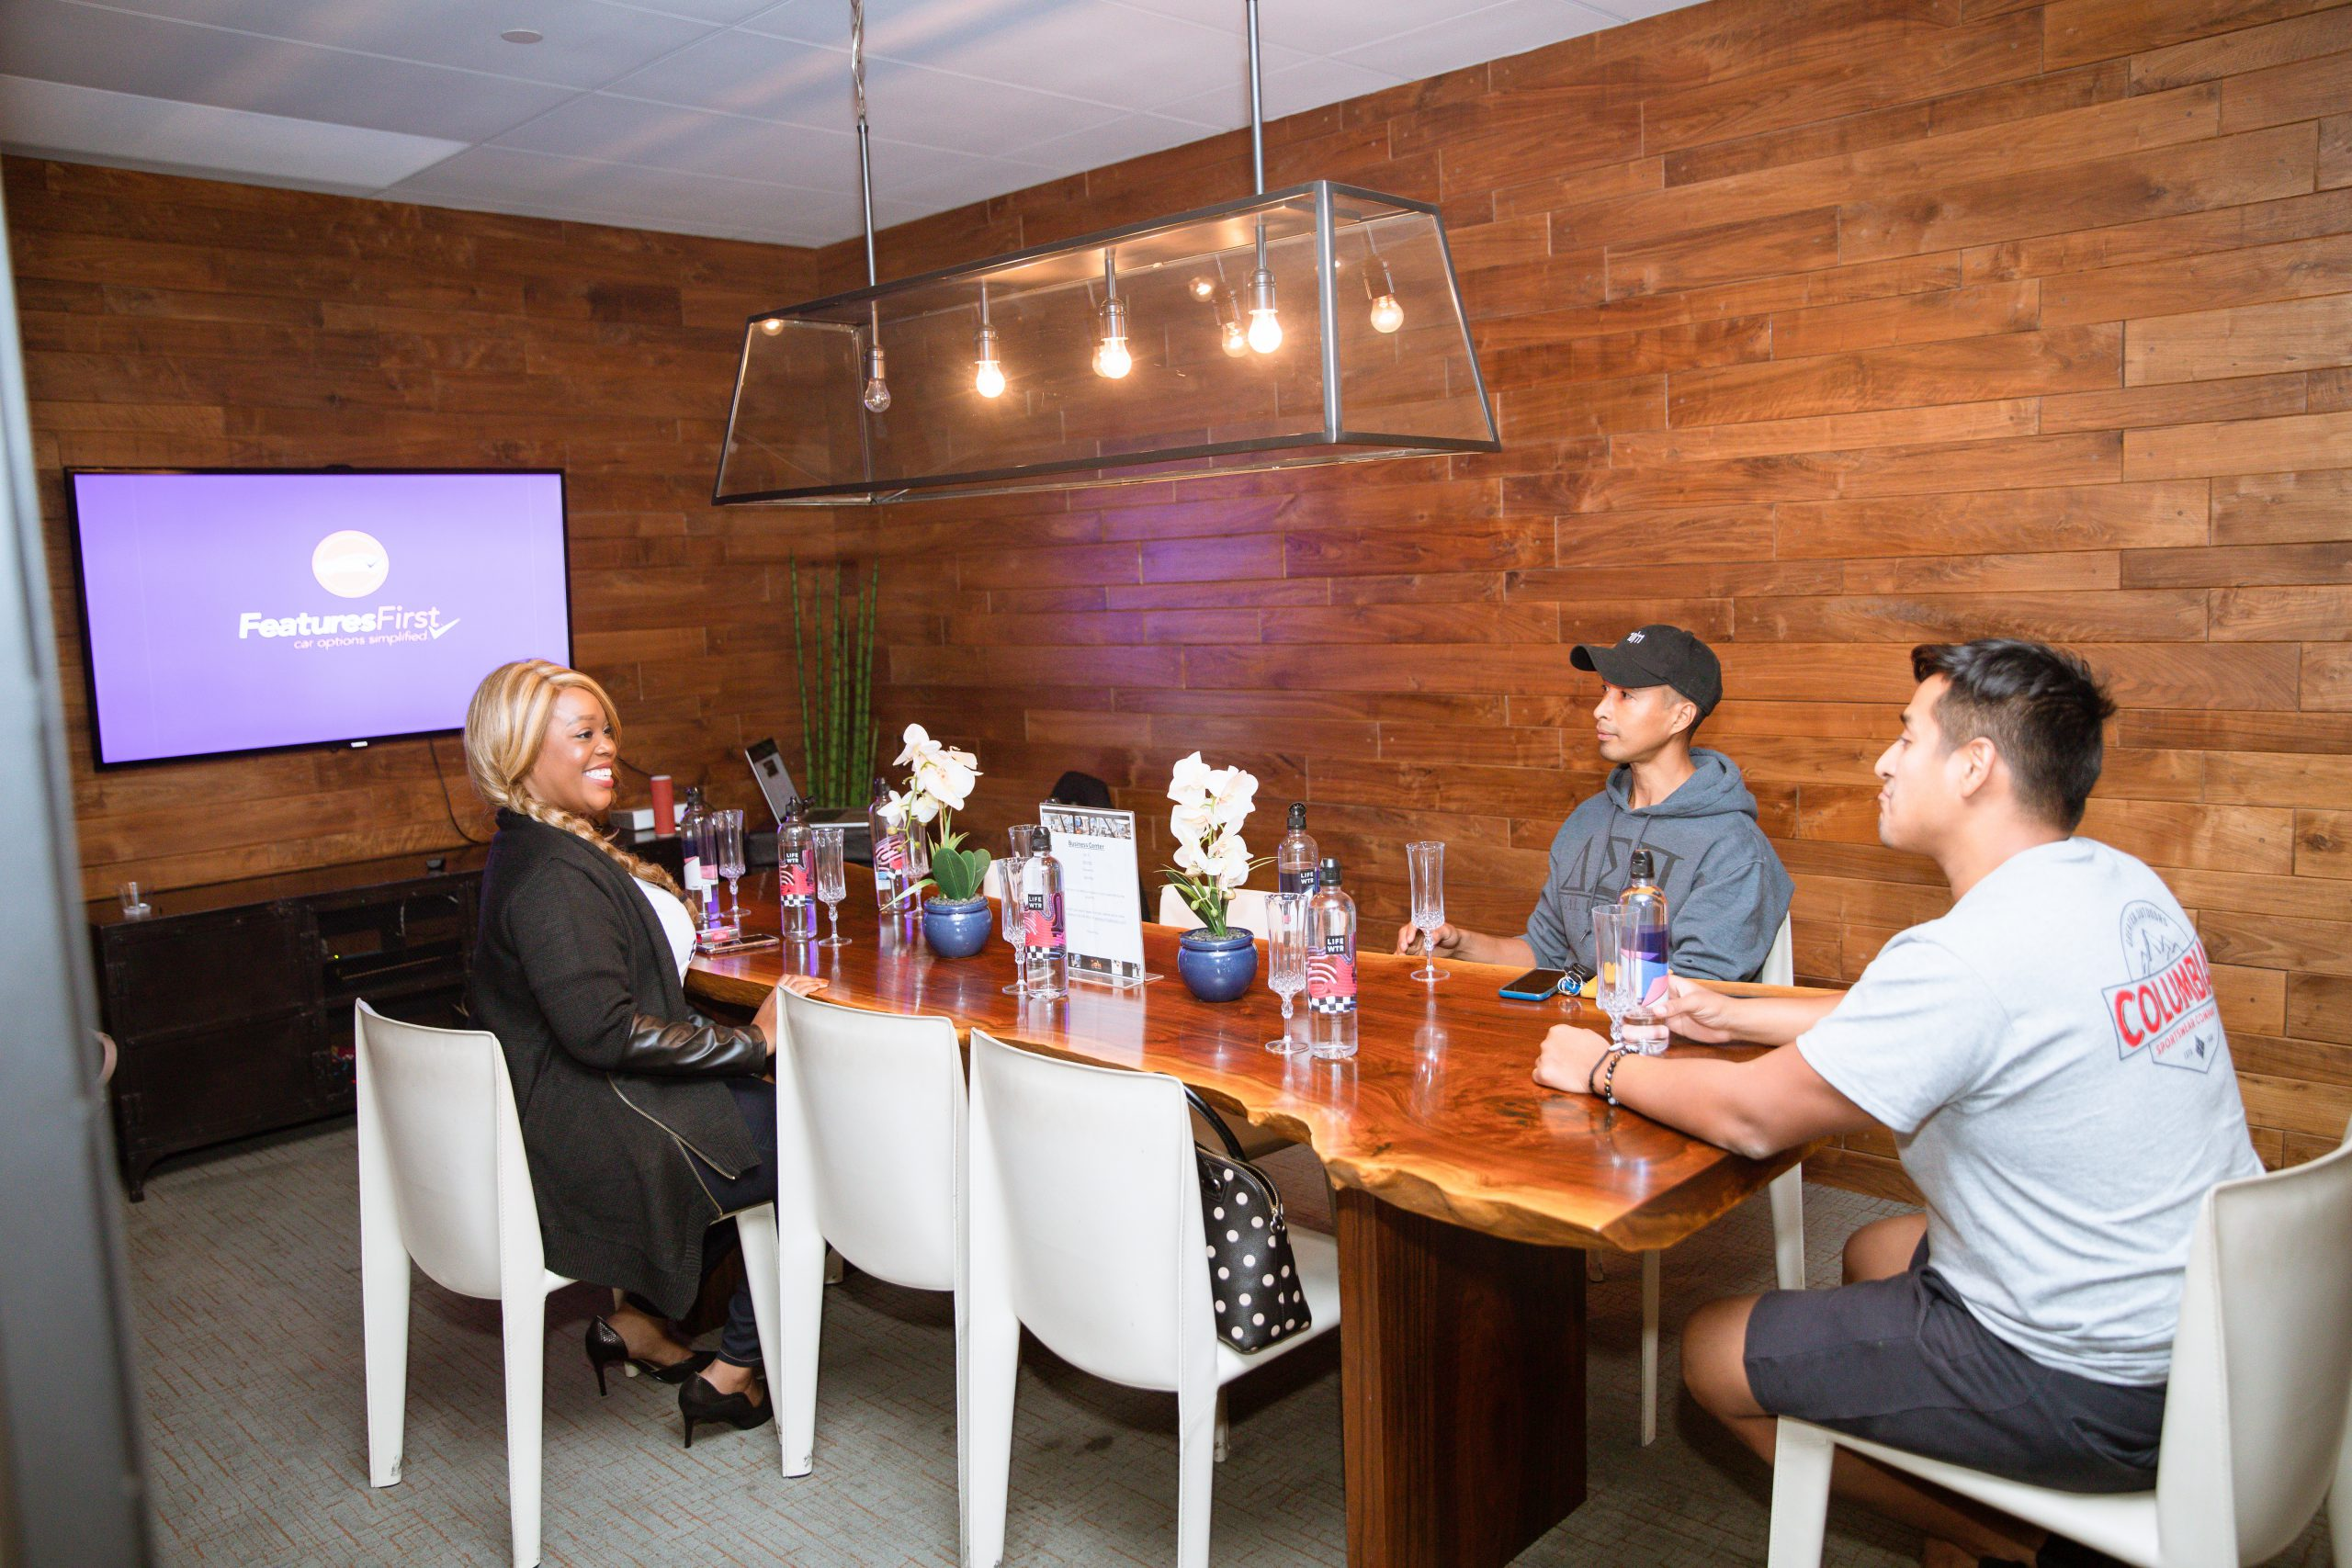 Founder Lisa Bailey sits at a wooden table talking with two men with a TV on the wall displaying the FeaturesFirst logo on a purple background